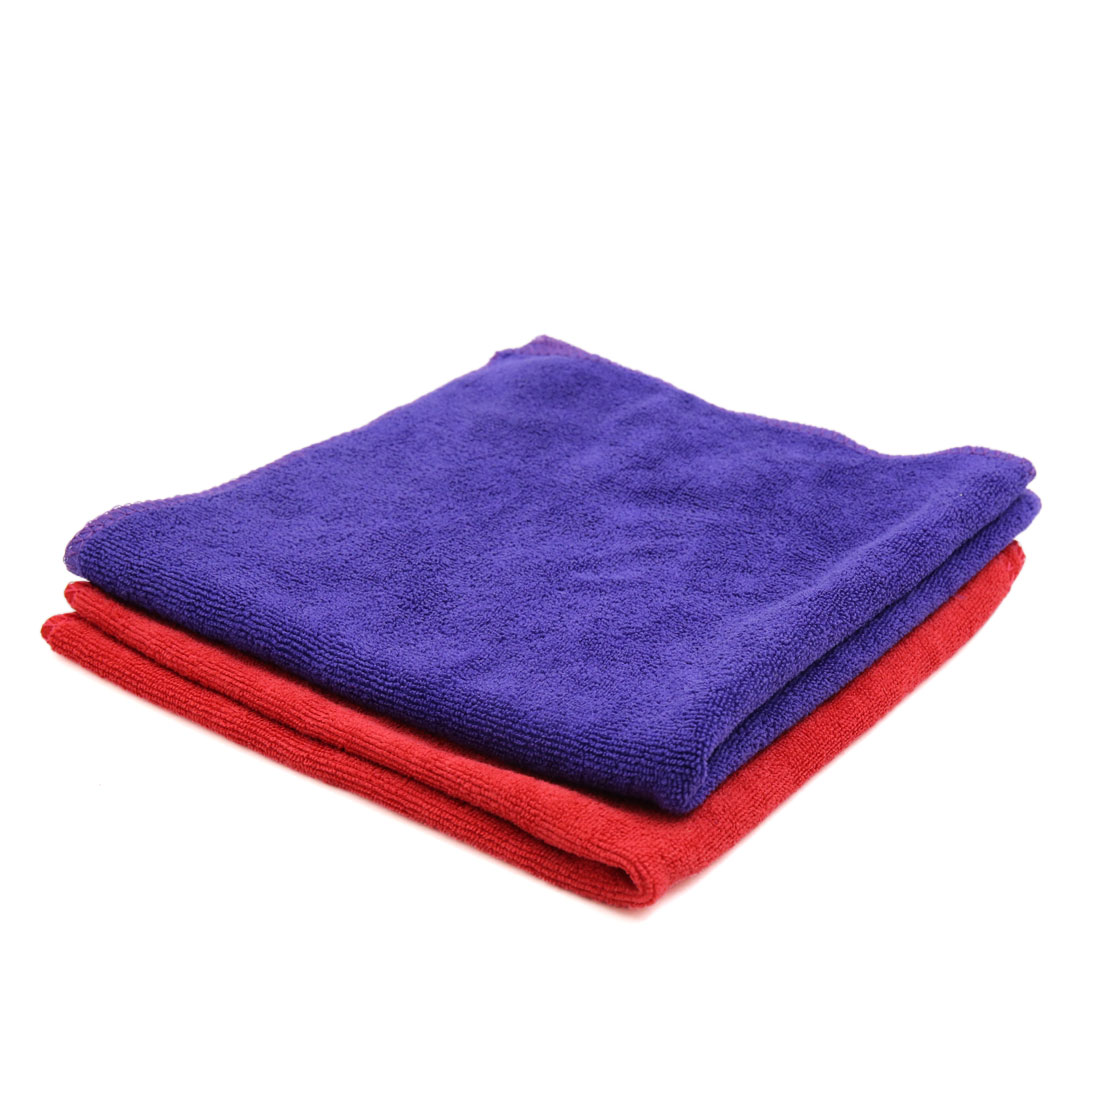 2 Pcs Water Absorbent Microfiber Fabric Car Clean Cloth Towel No-scratched for Auto Door Glass Purple Red